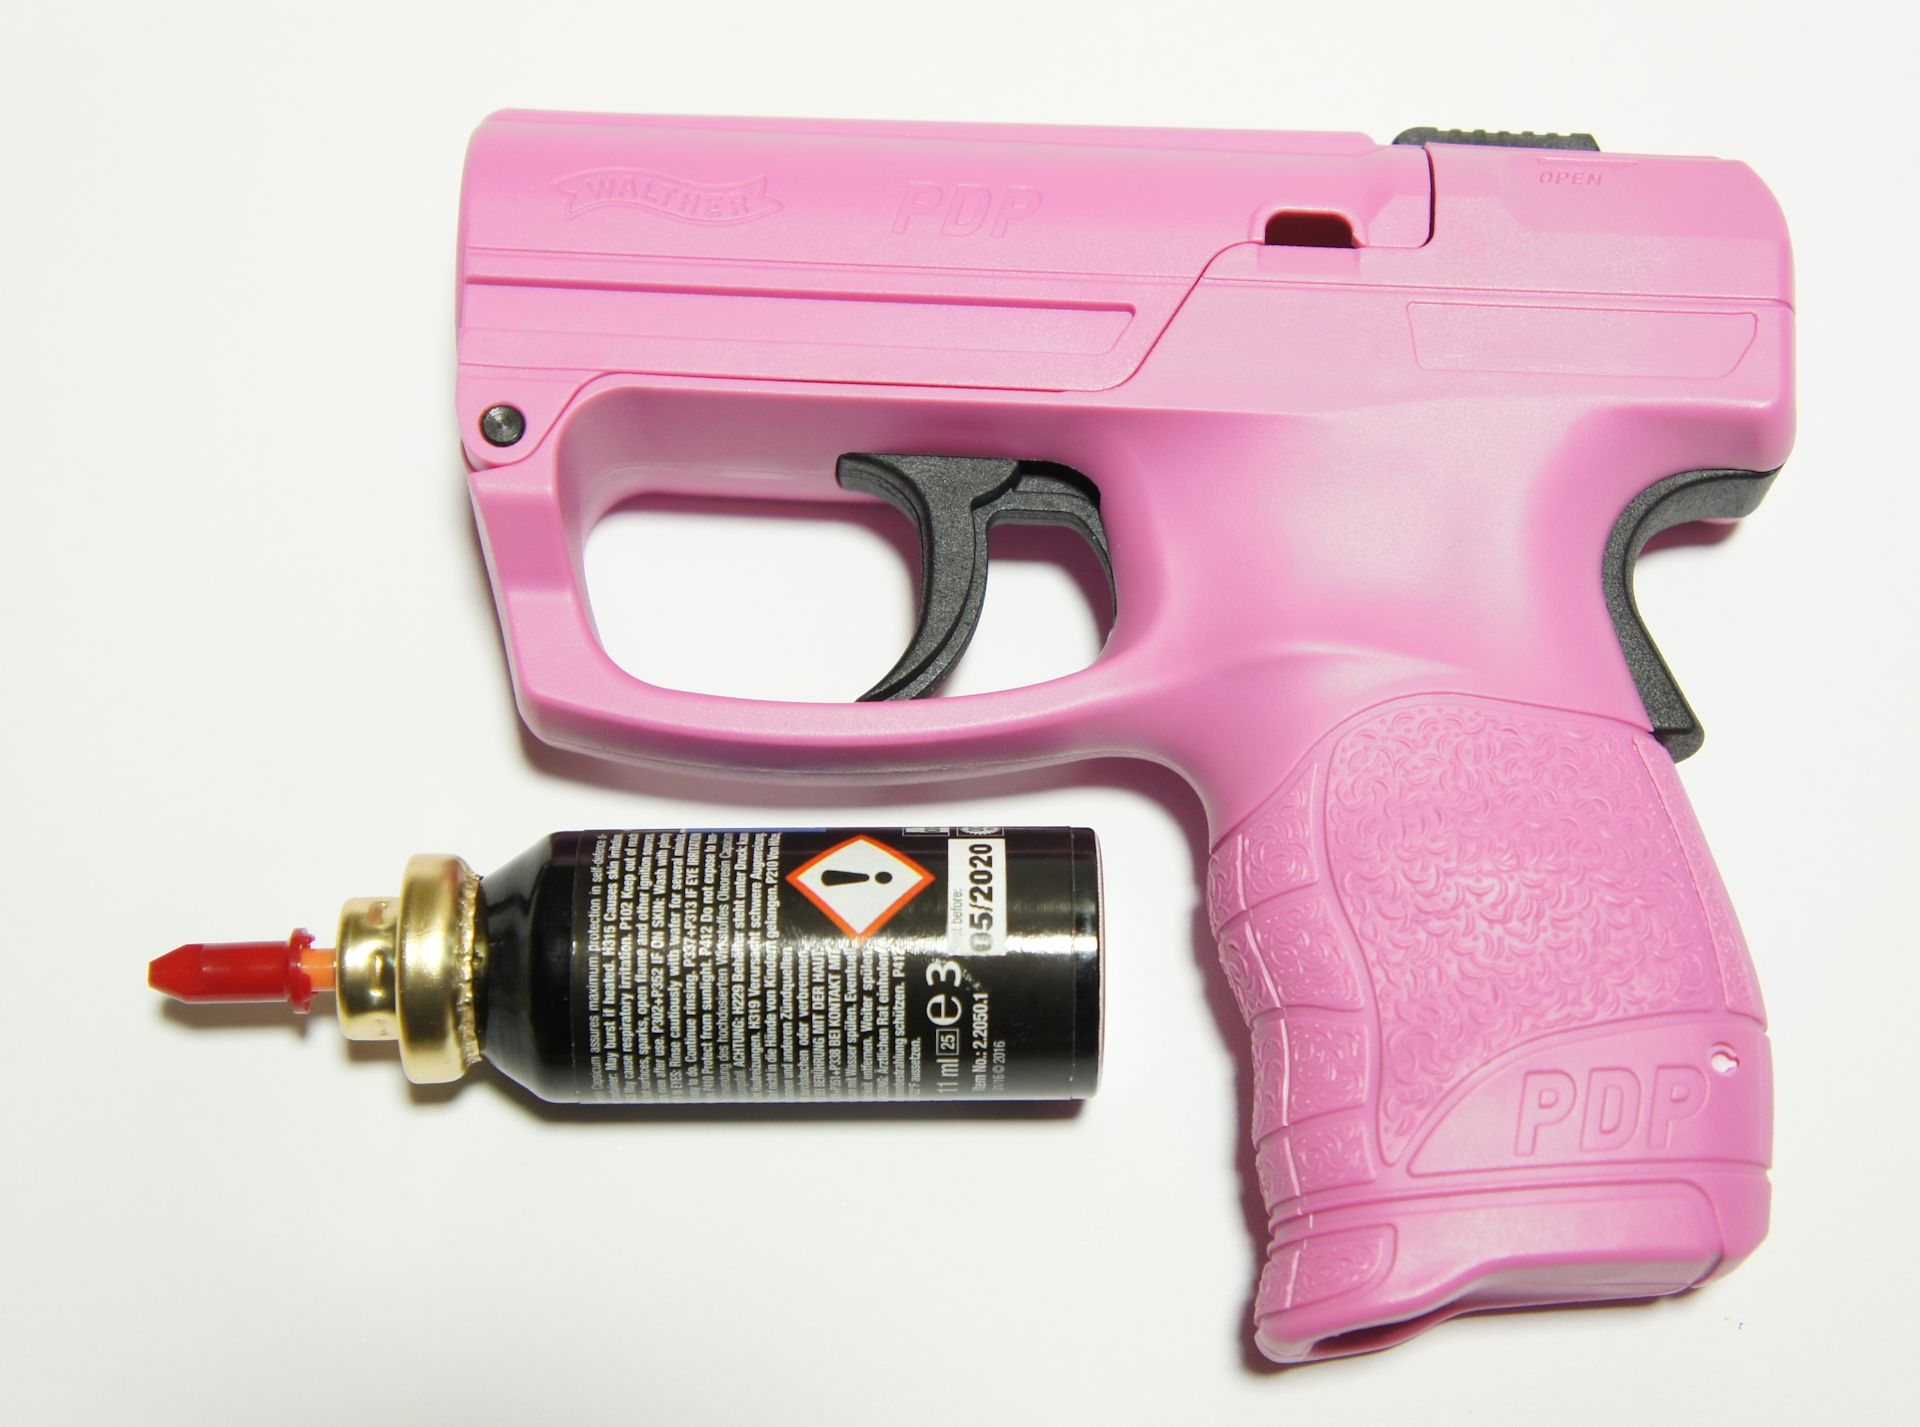 Walther PDP Sprühgerät in pink